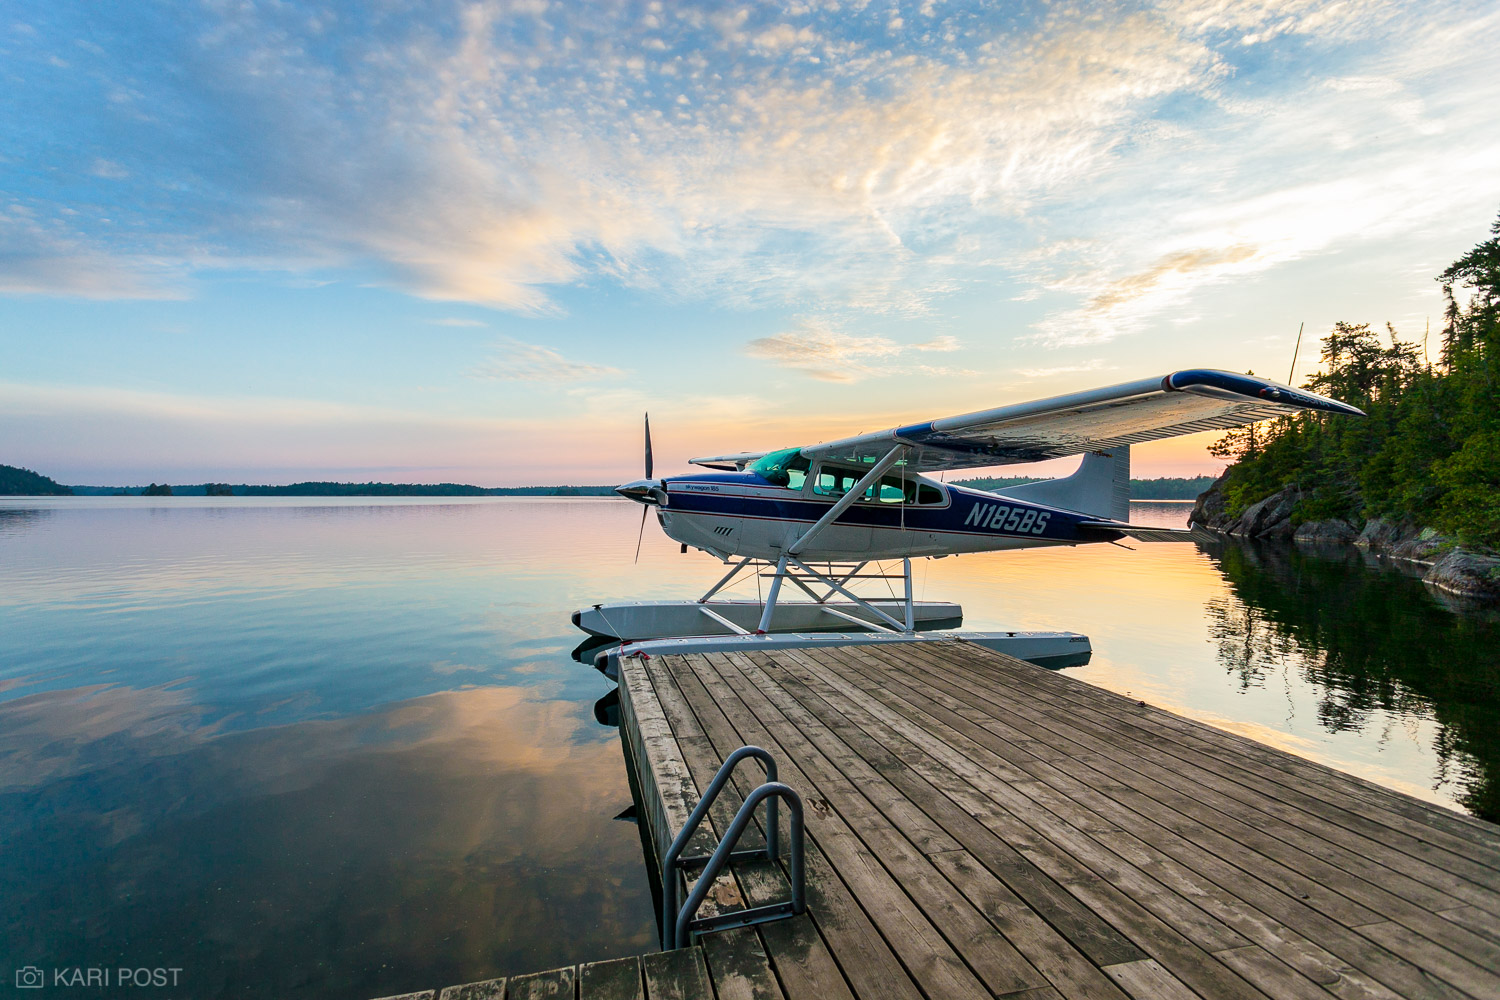 Canada, Lake Temagami, Ontario, Skywagon 185, Temagami, Temagami Wilderness, adventure, airplane, dawn, float plane, lake, pastel, peaceful, plane, reflection, sea plane, sunrise, tranquil, travel, photo